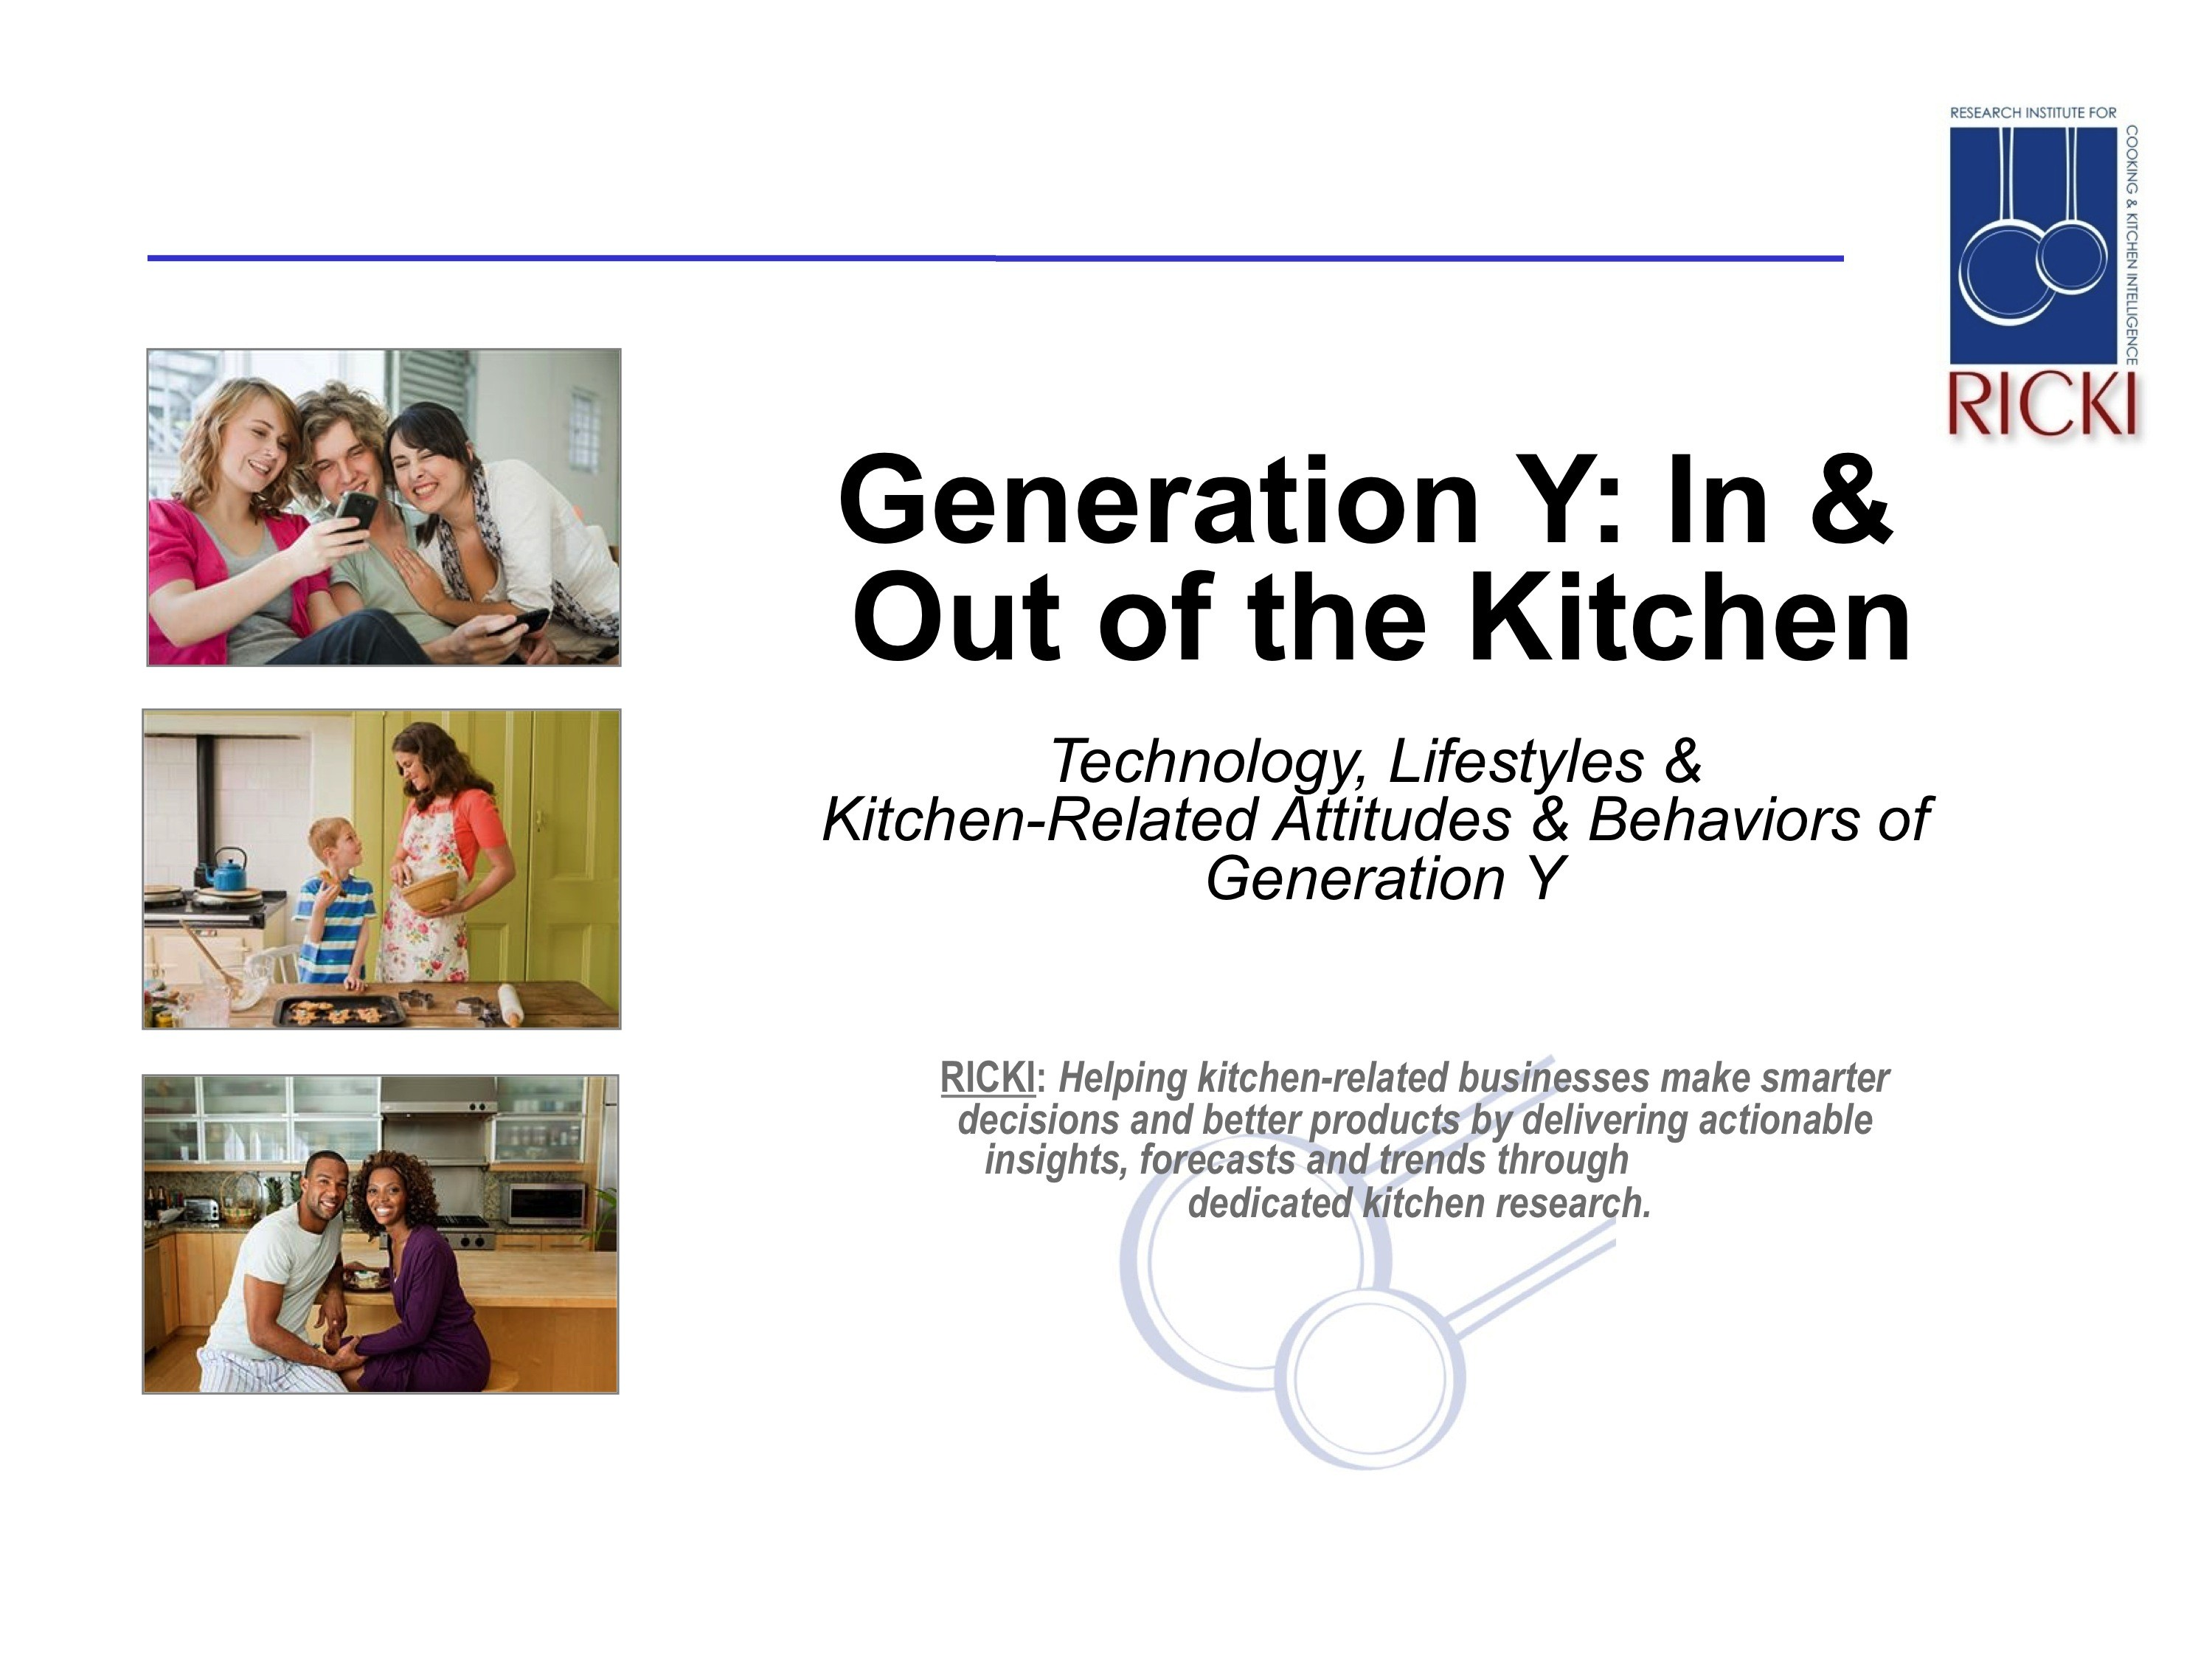 generation y research report part in out of the kitchen generation y in out of the kitchen